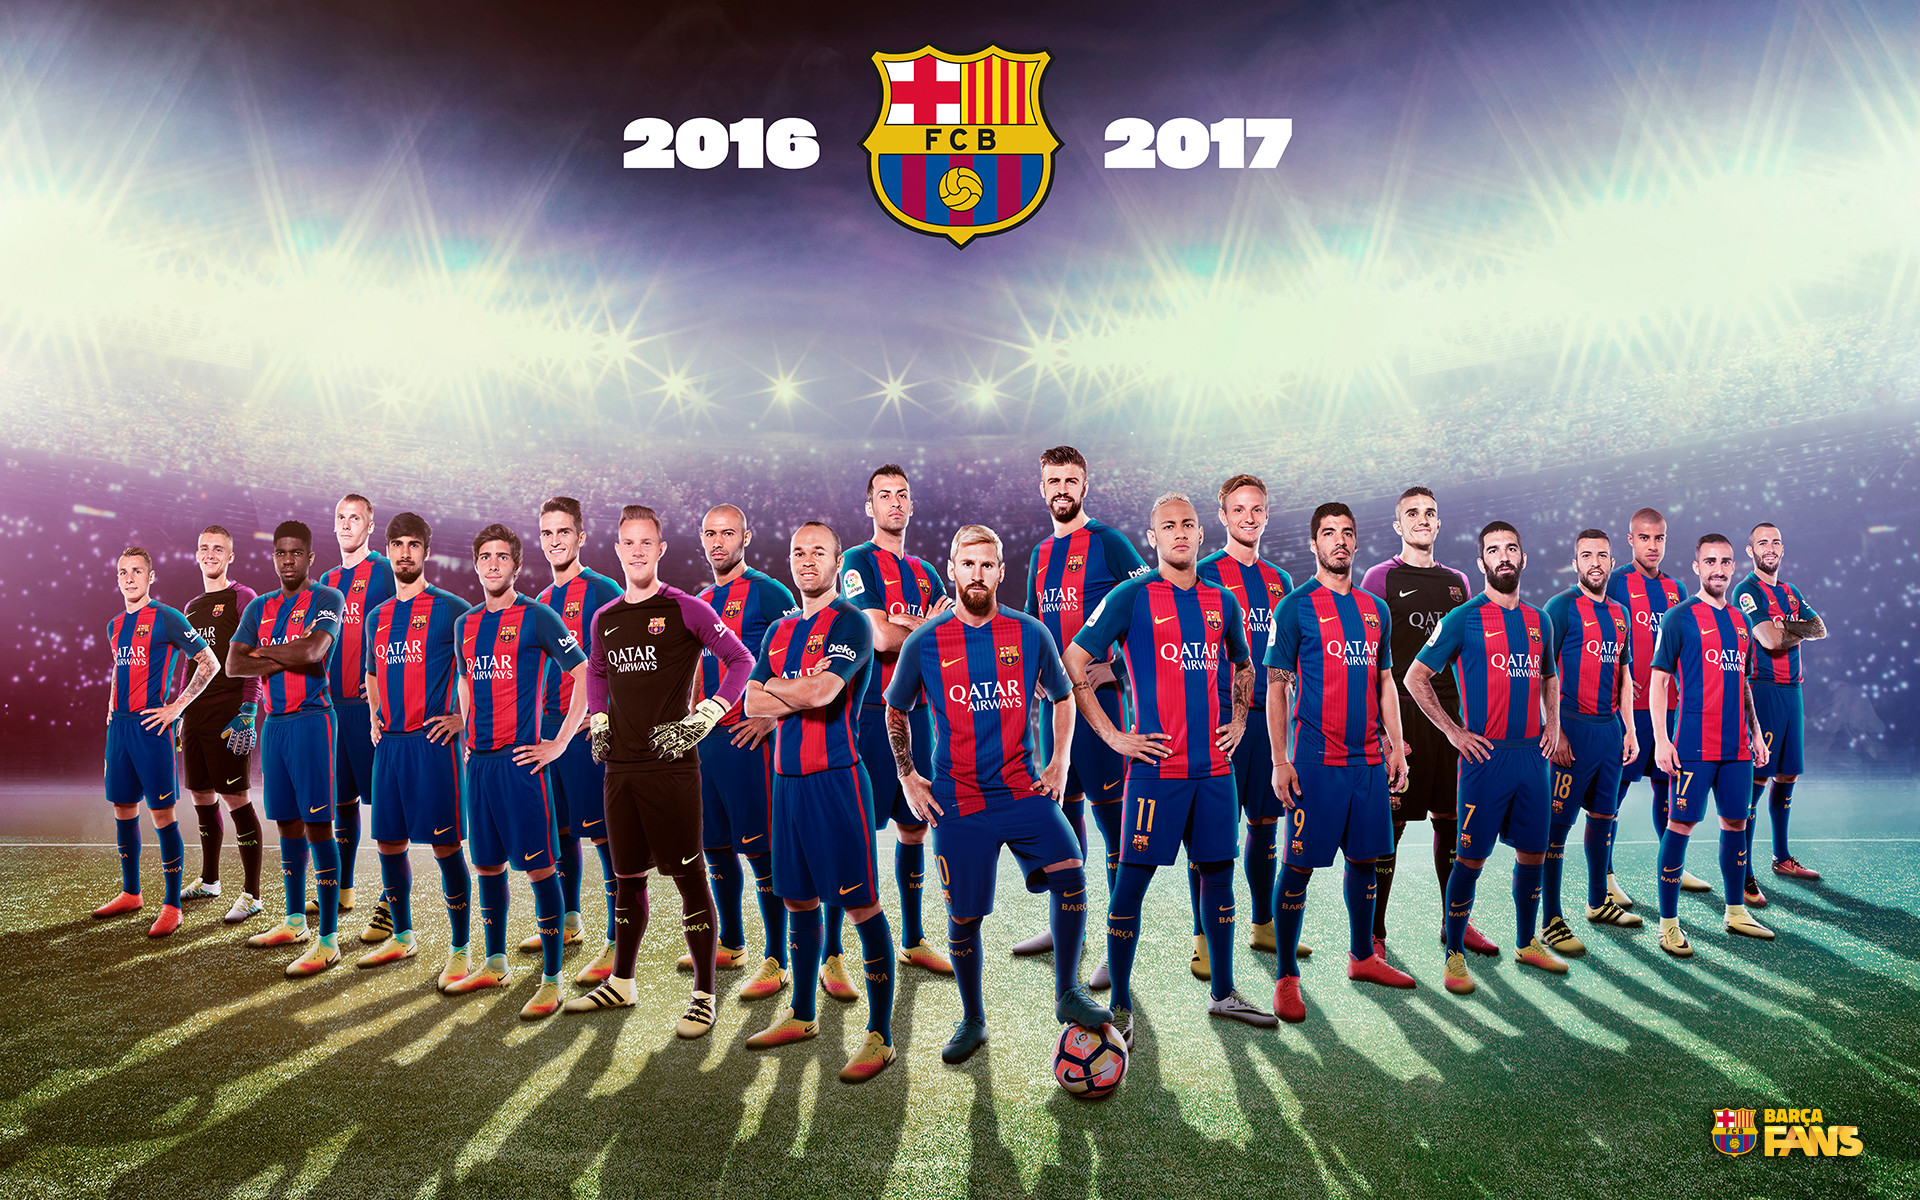 Fc Barcelona Wallpaper 2017 1920x1200